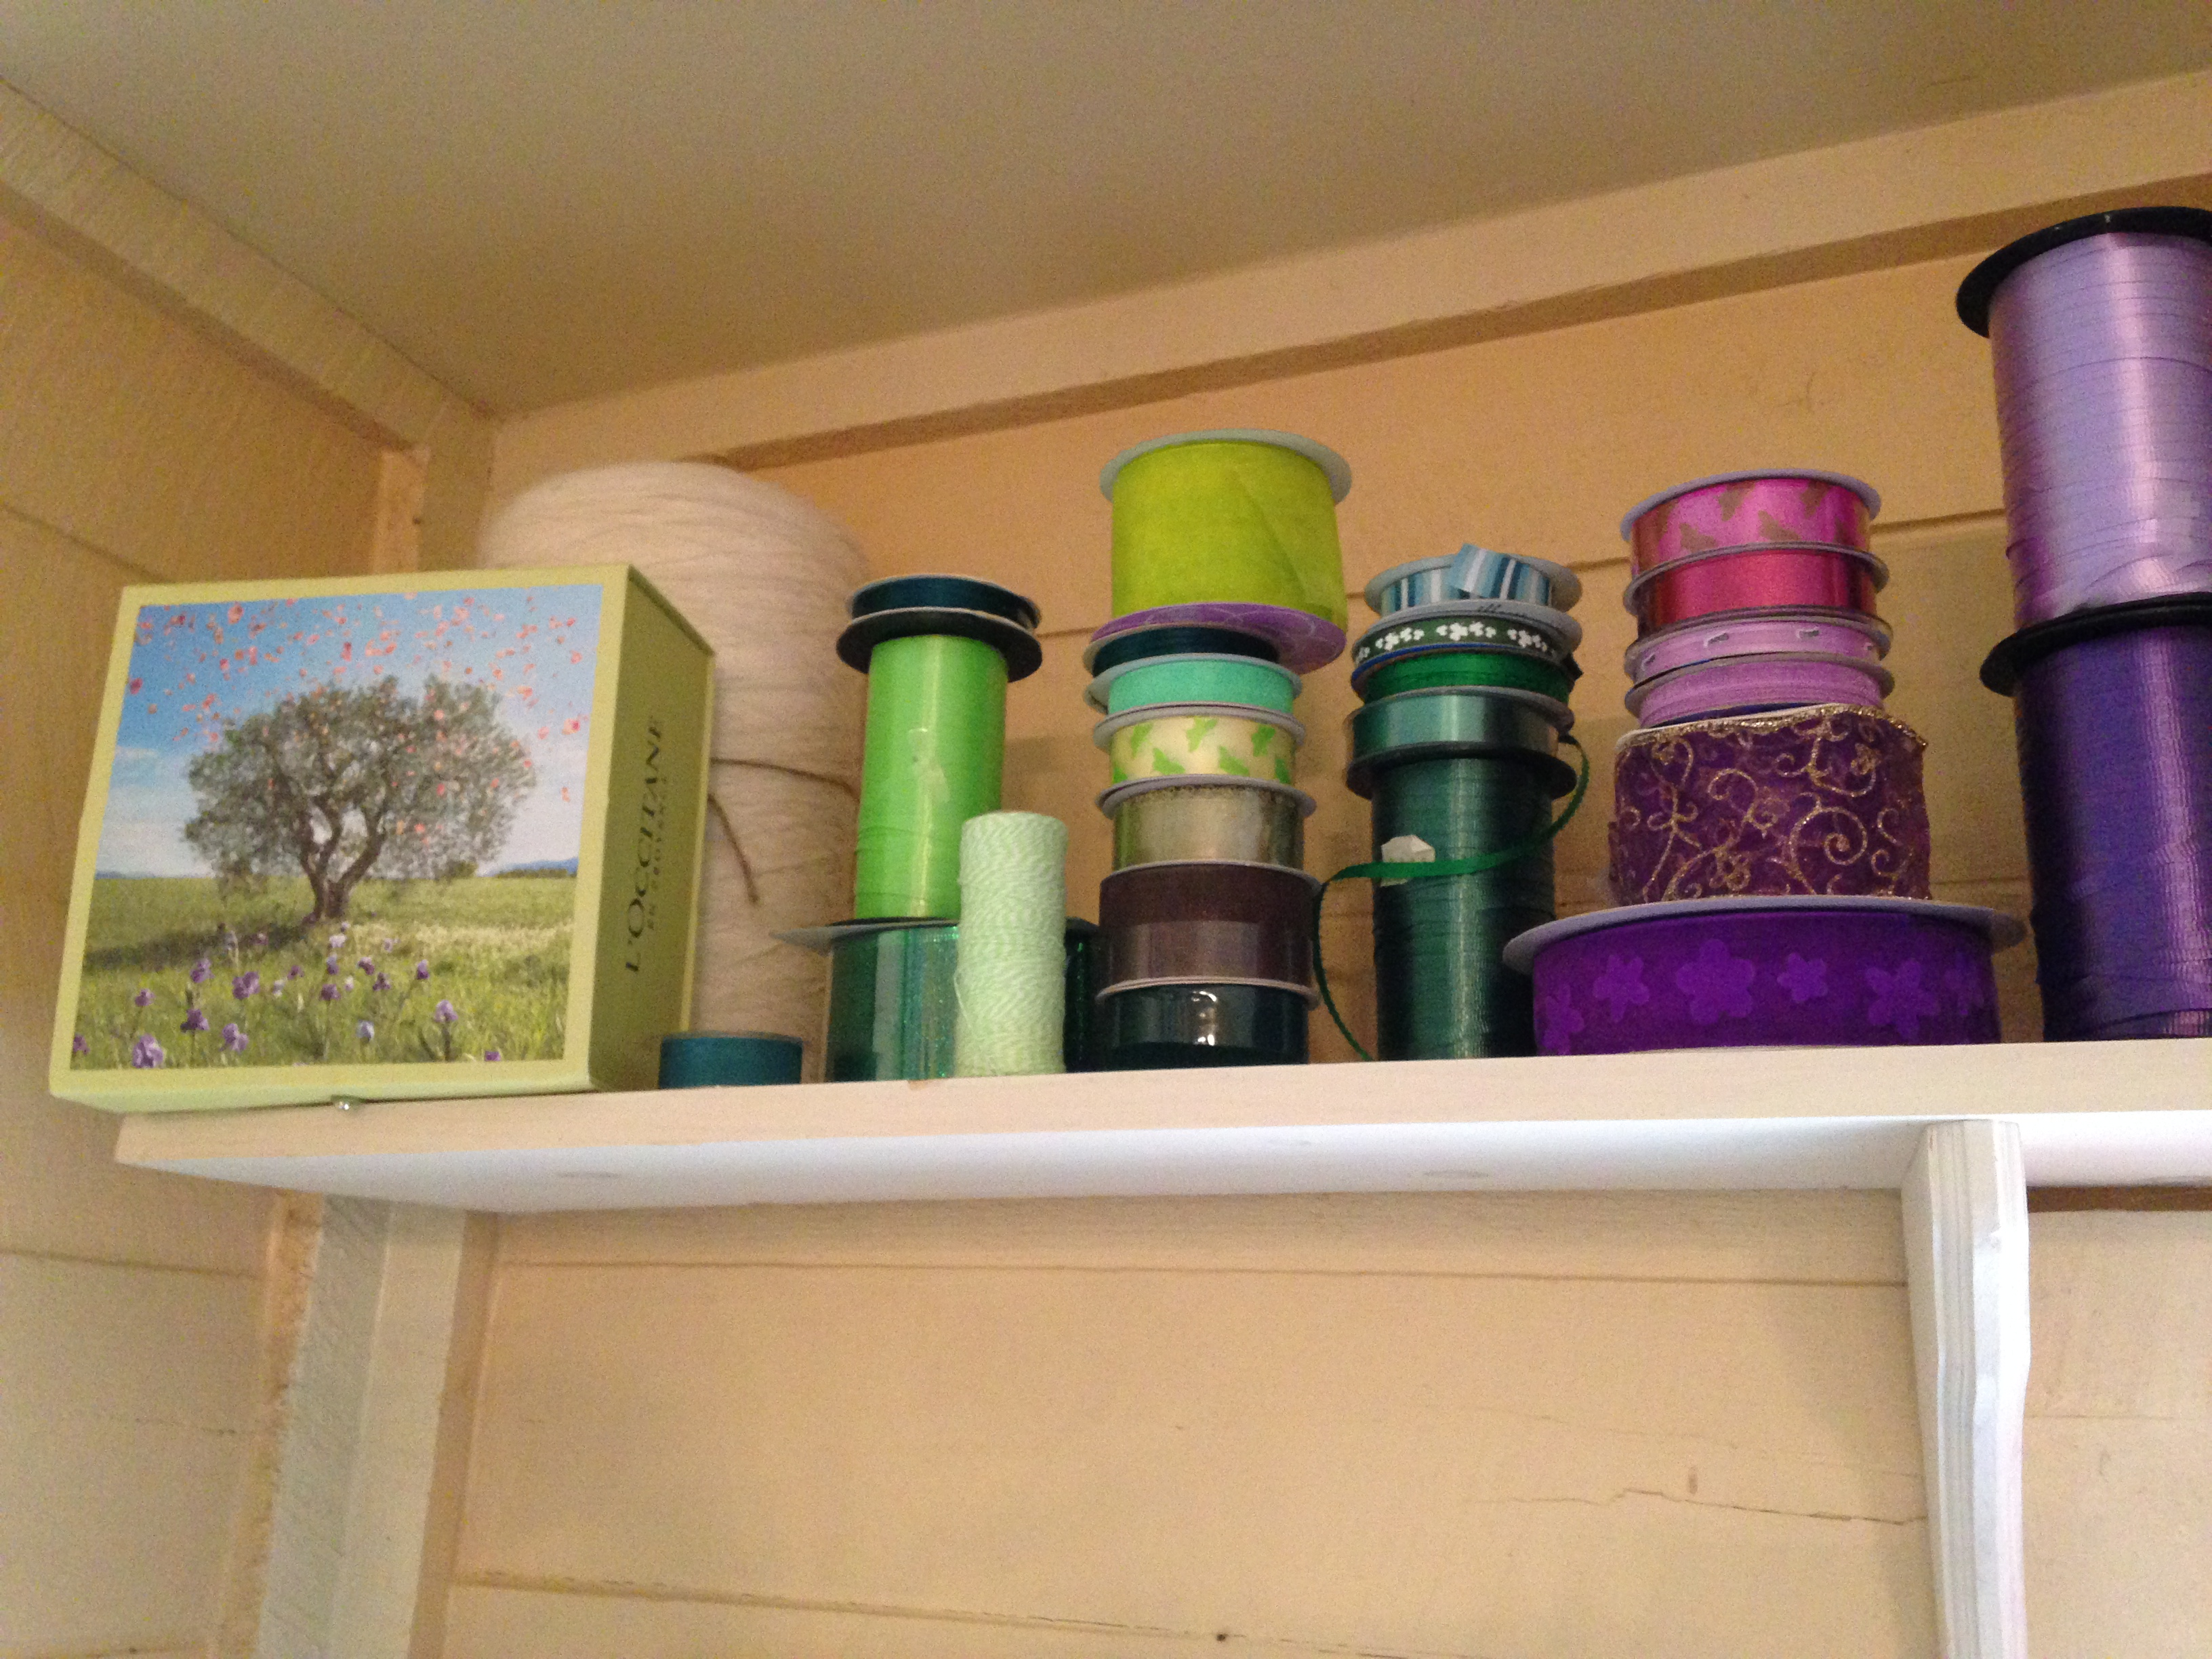 I store my ribbons spools on a shelf that my mom and dad made for me, above the window area.